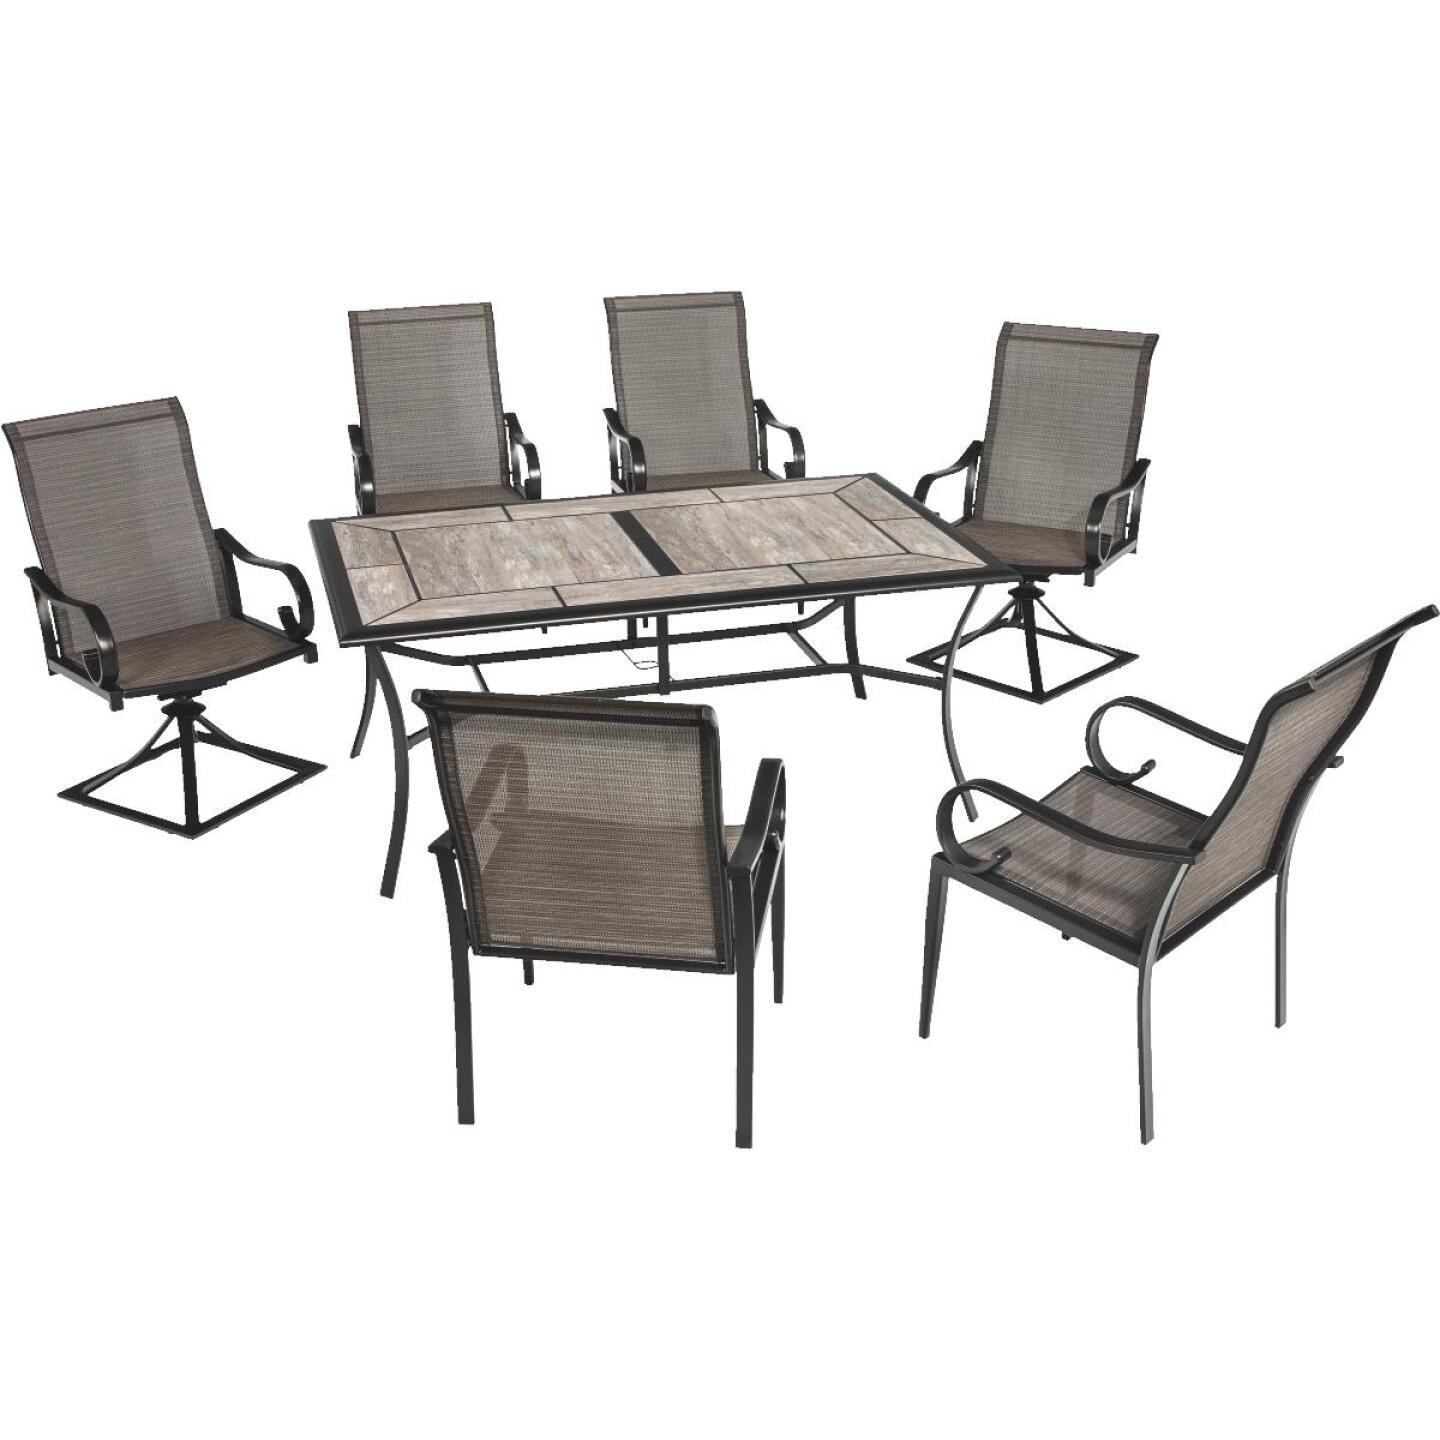 Outdoor Expressions Berkshire 7-Piece Dining Set Image 31